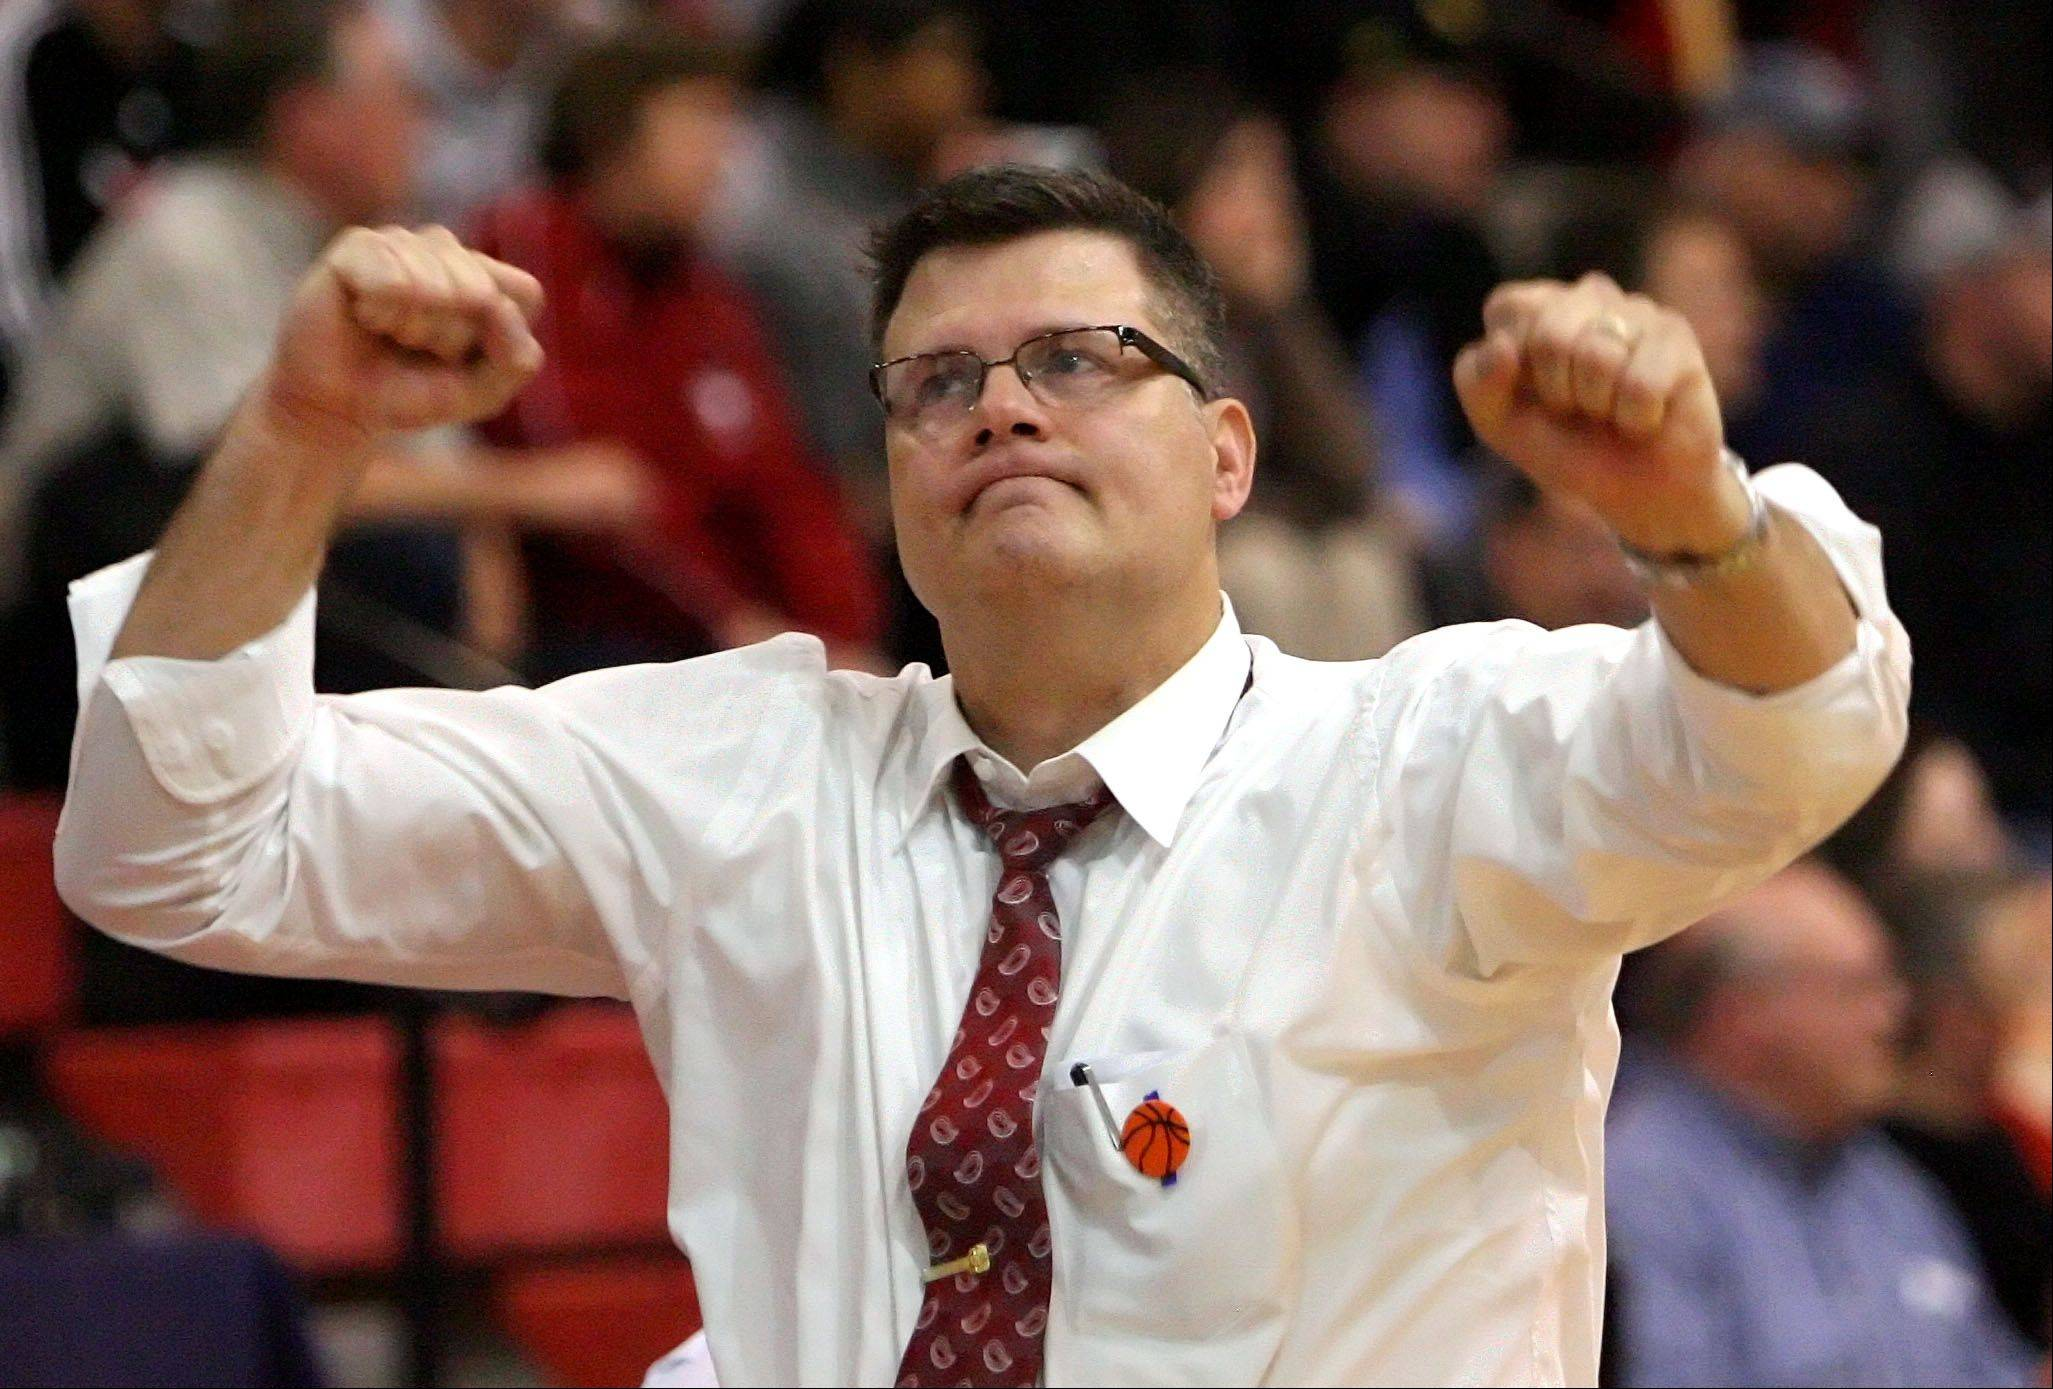 Coach Dick Knar and his Mundelein players are excited about their first appearance in a post-Christmas tournament in Torrey Pines, Calif.